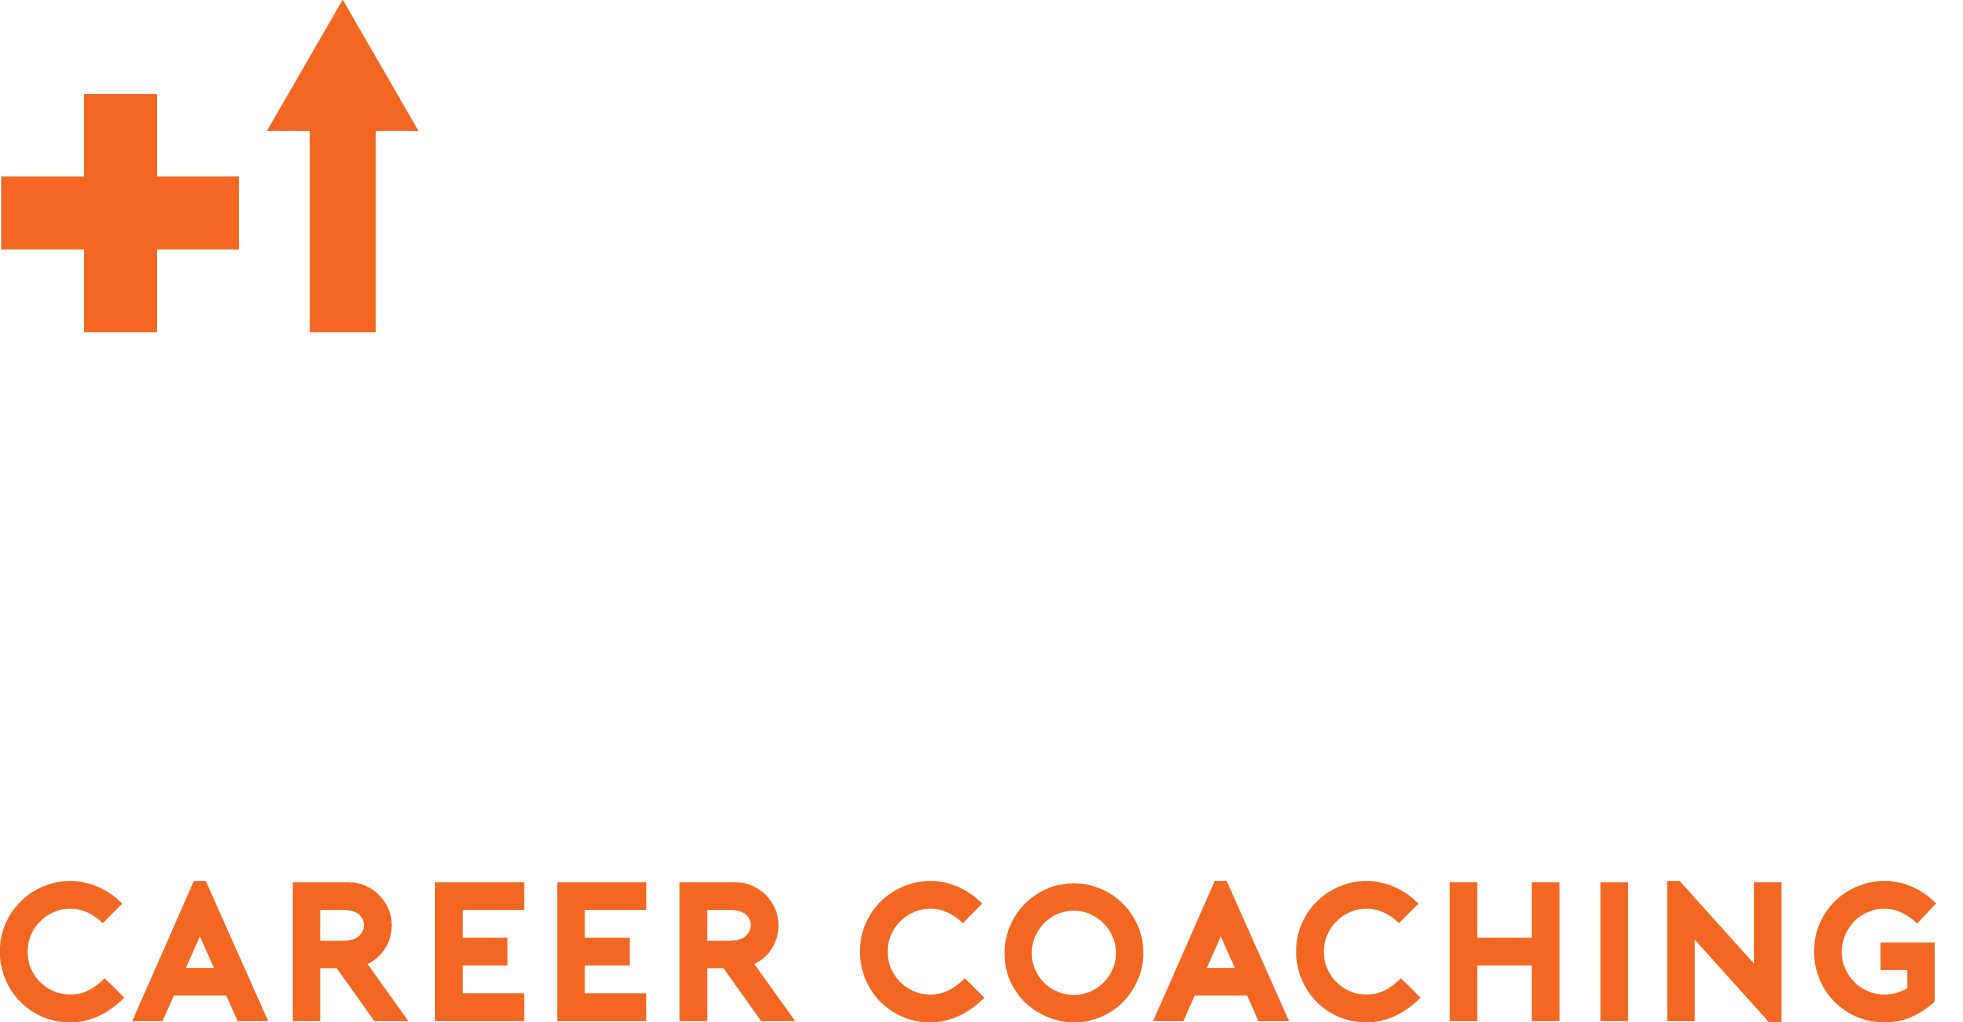 Becky Berry Career Coaching